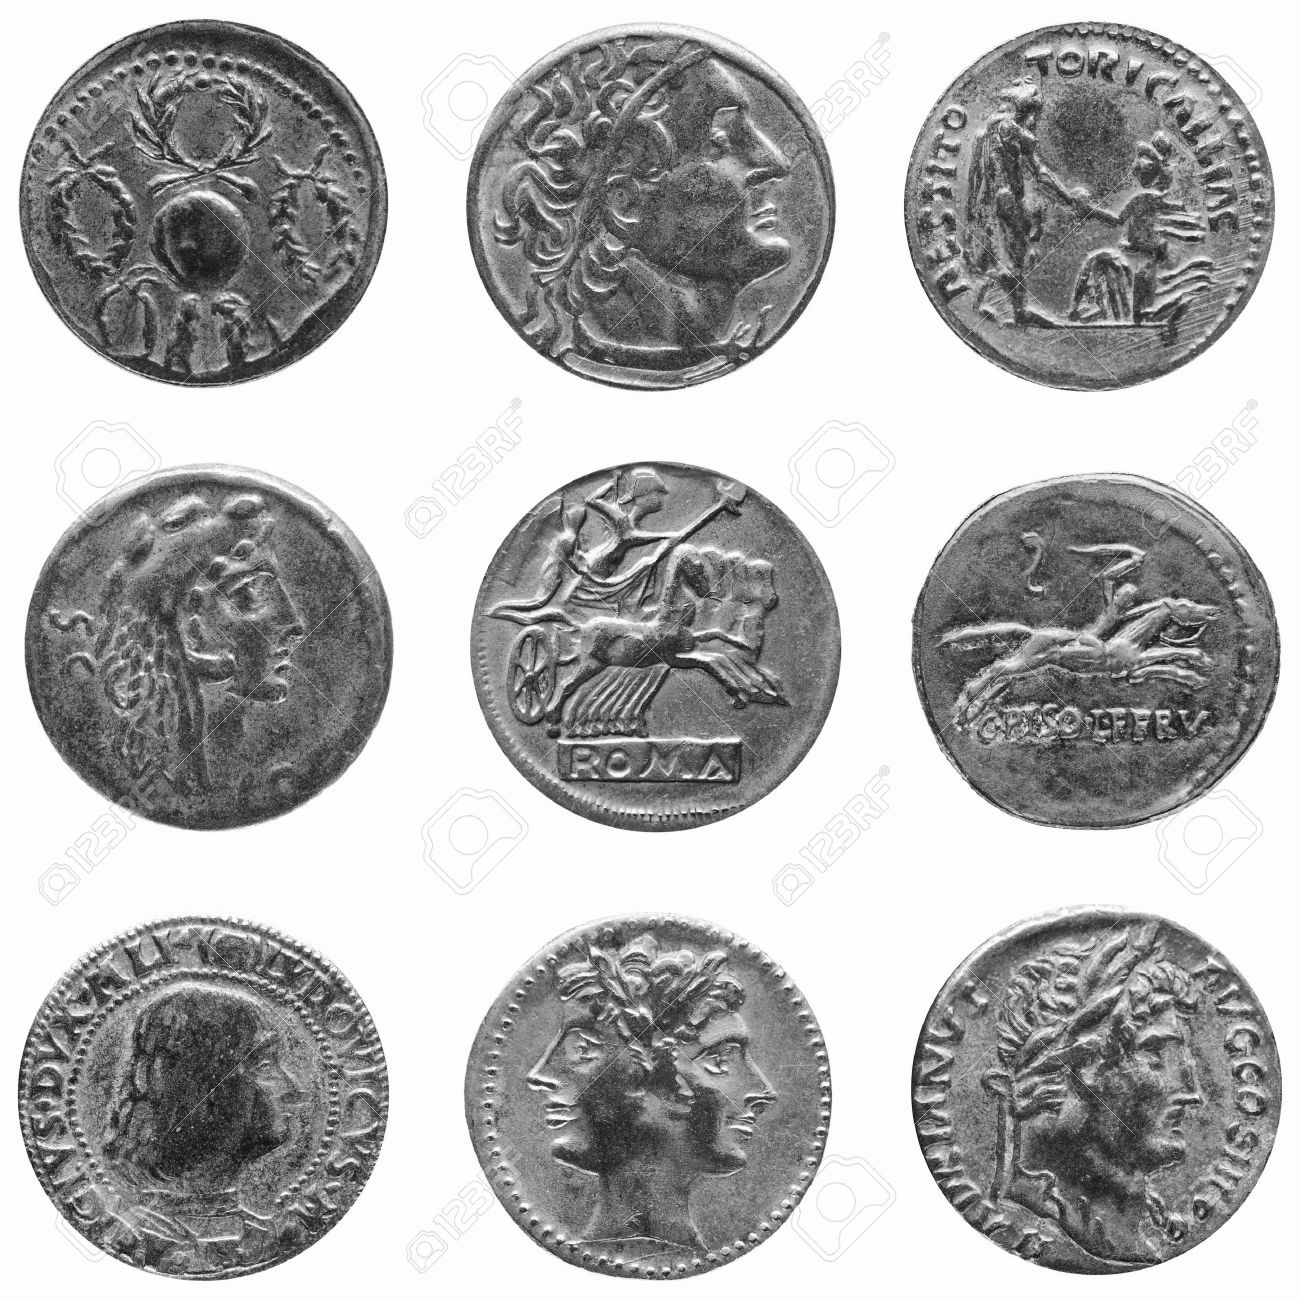 Image result for roman coins